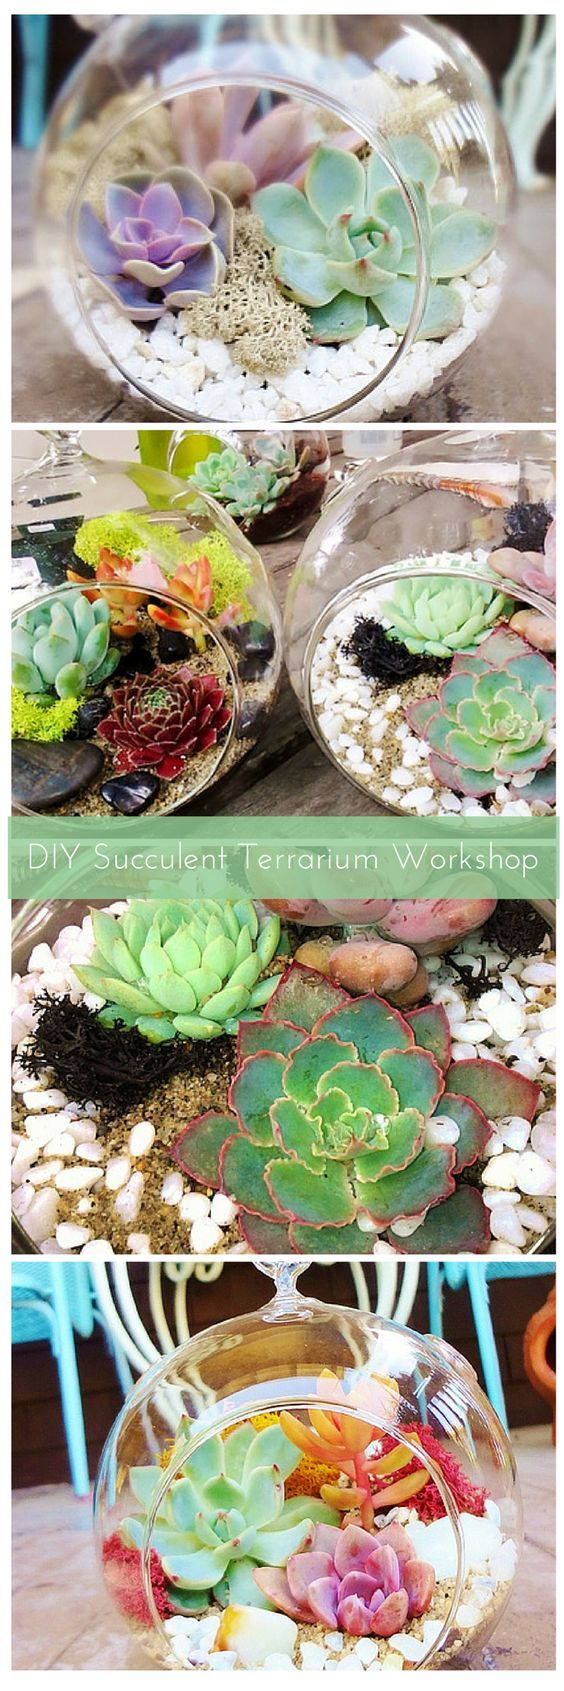 How To Make A Terrarium Quickly And Easily | The WHOot